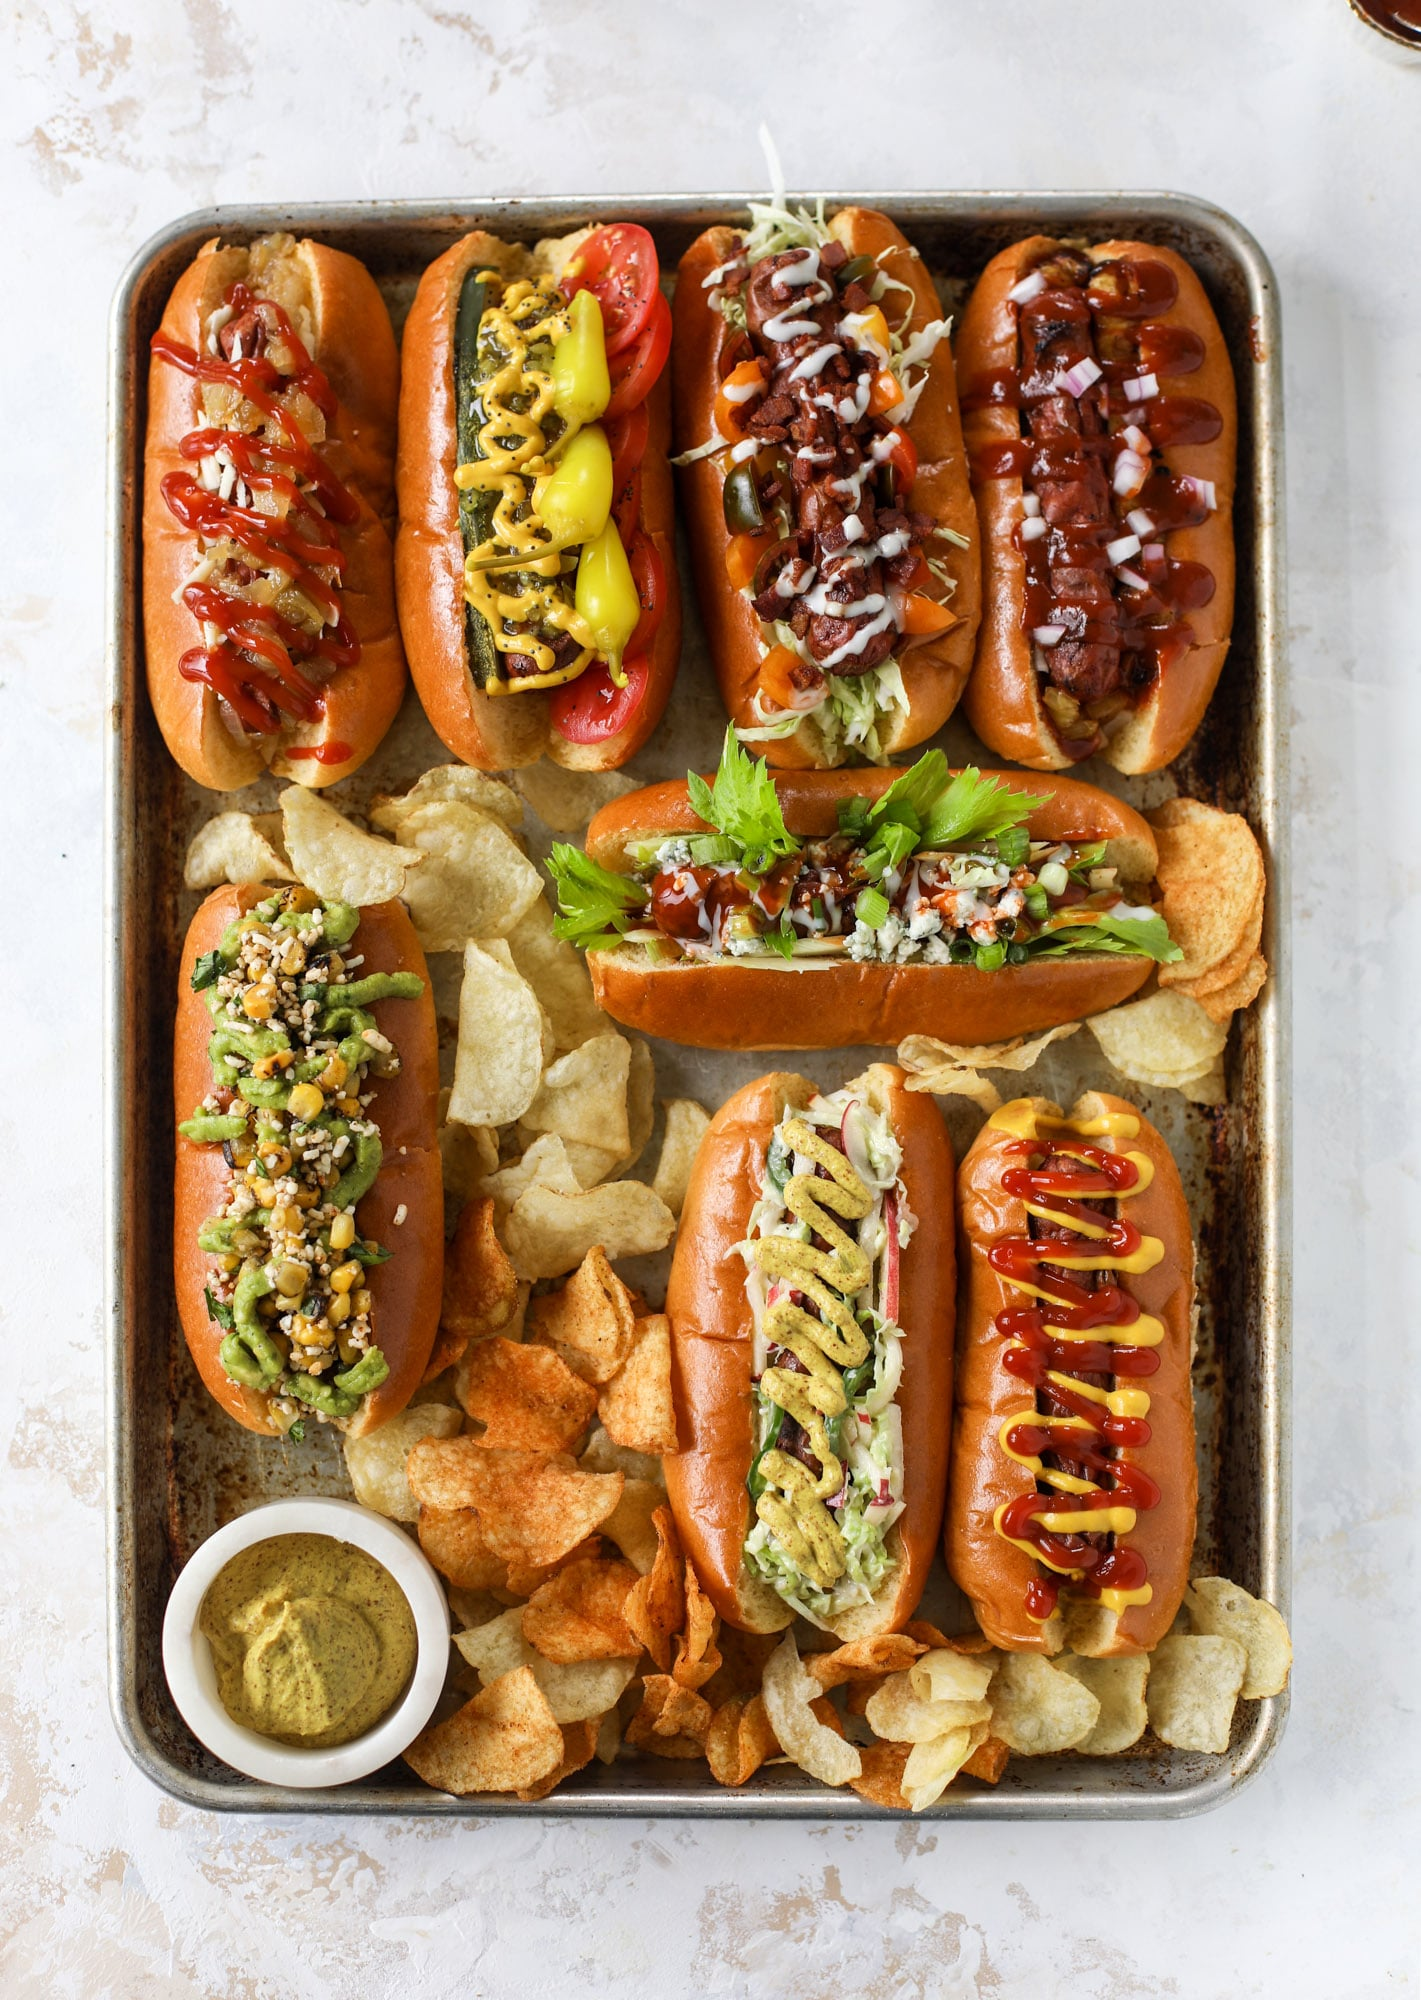 Have the Most Fun This Weekend with a Hot Dog Bar! Plus, 7 of My Favorite Fancy Hot Dogs.